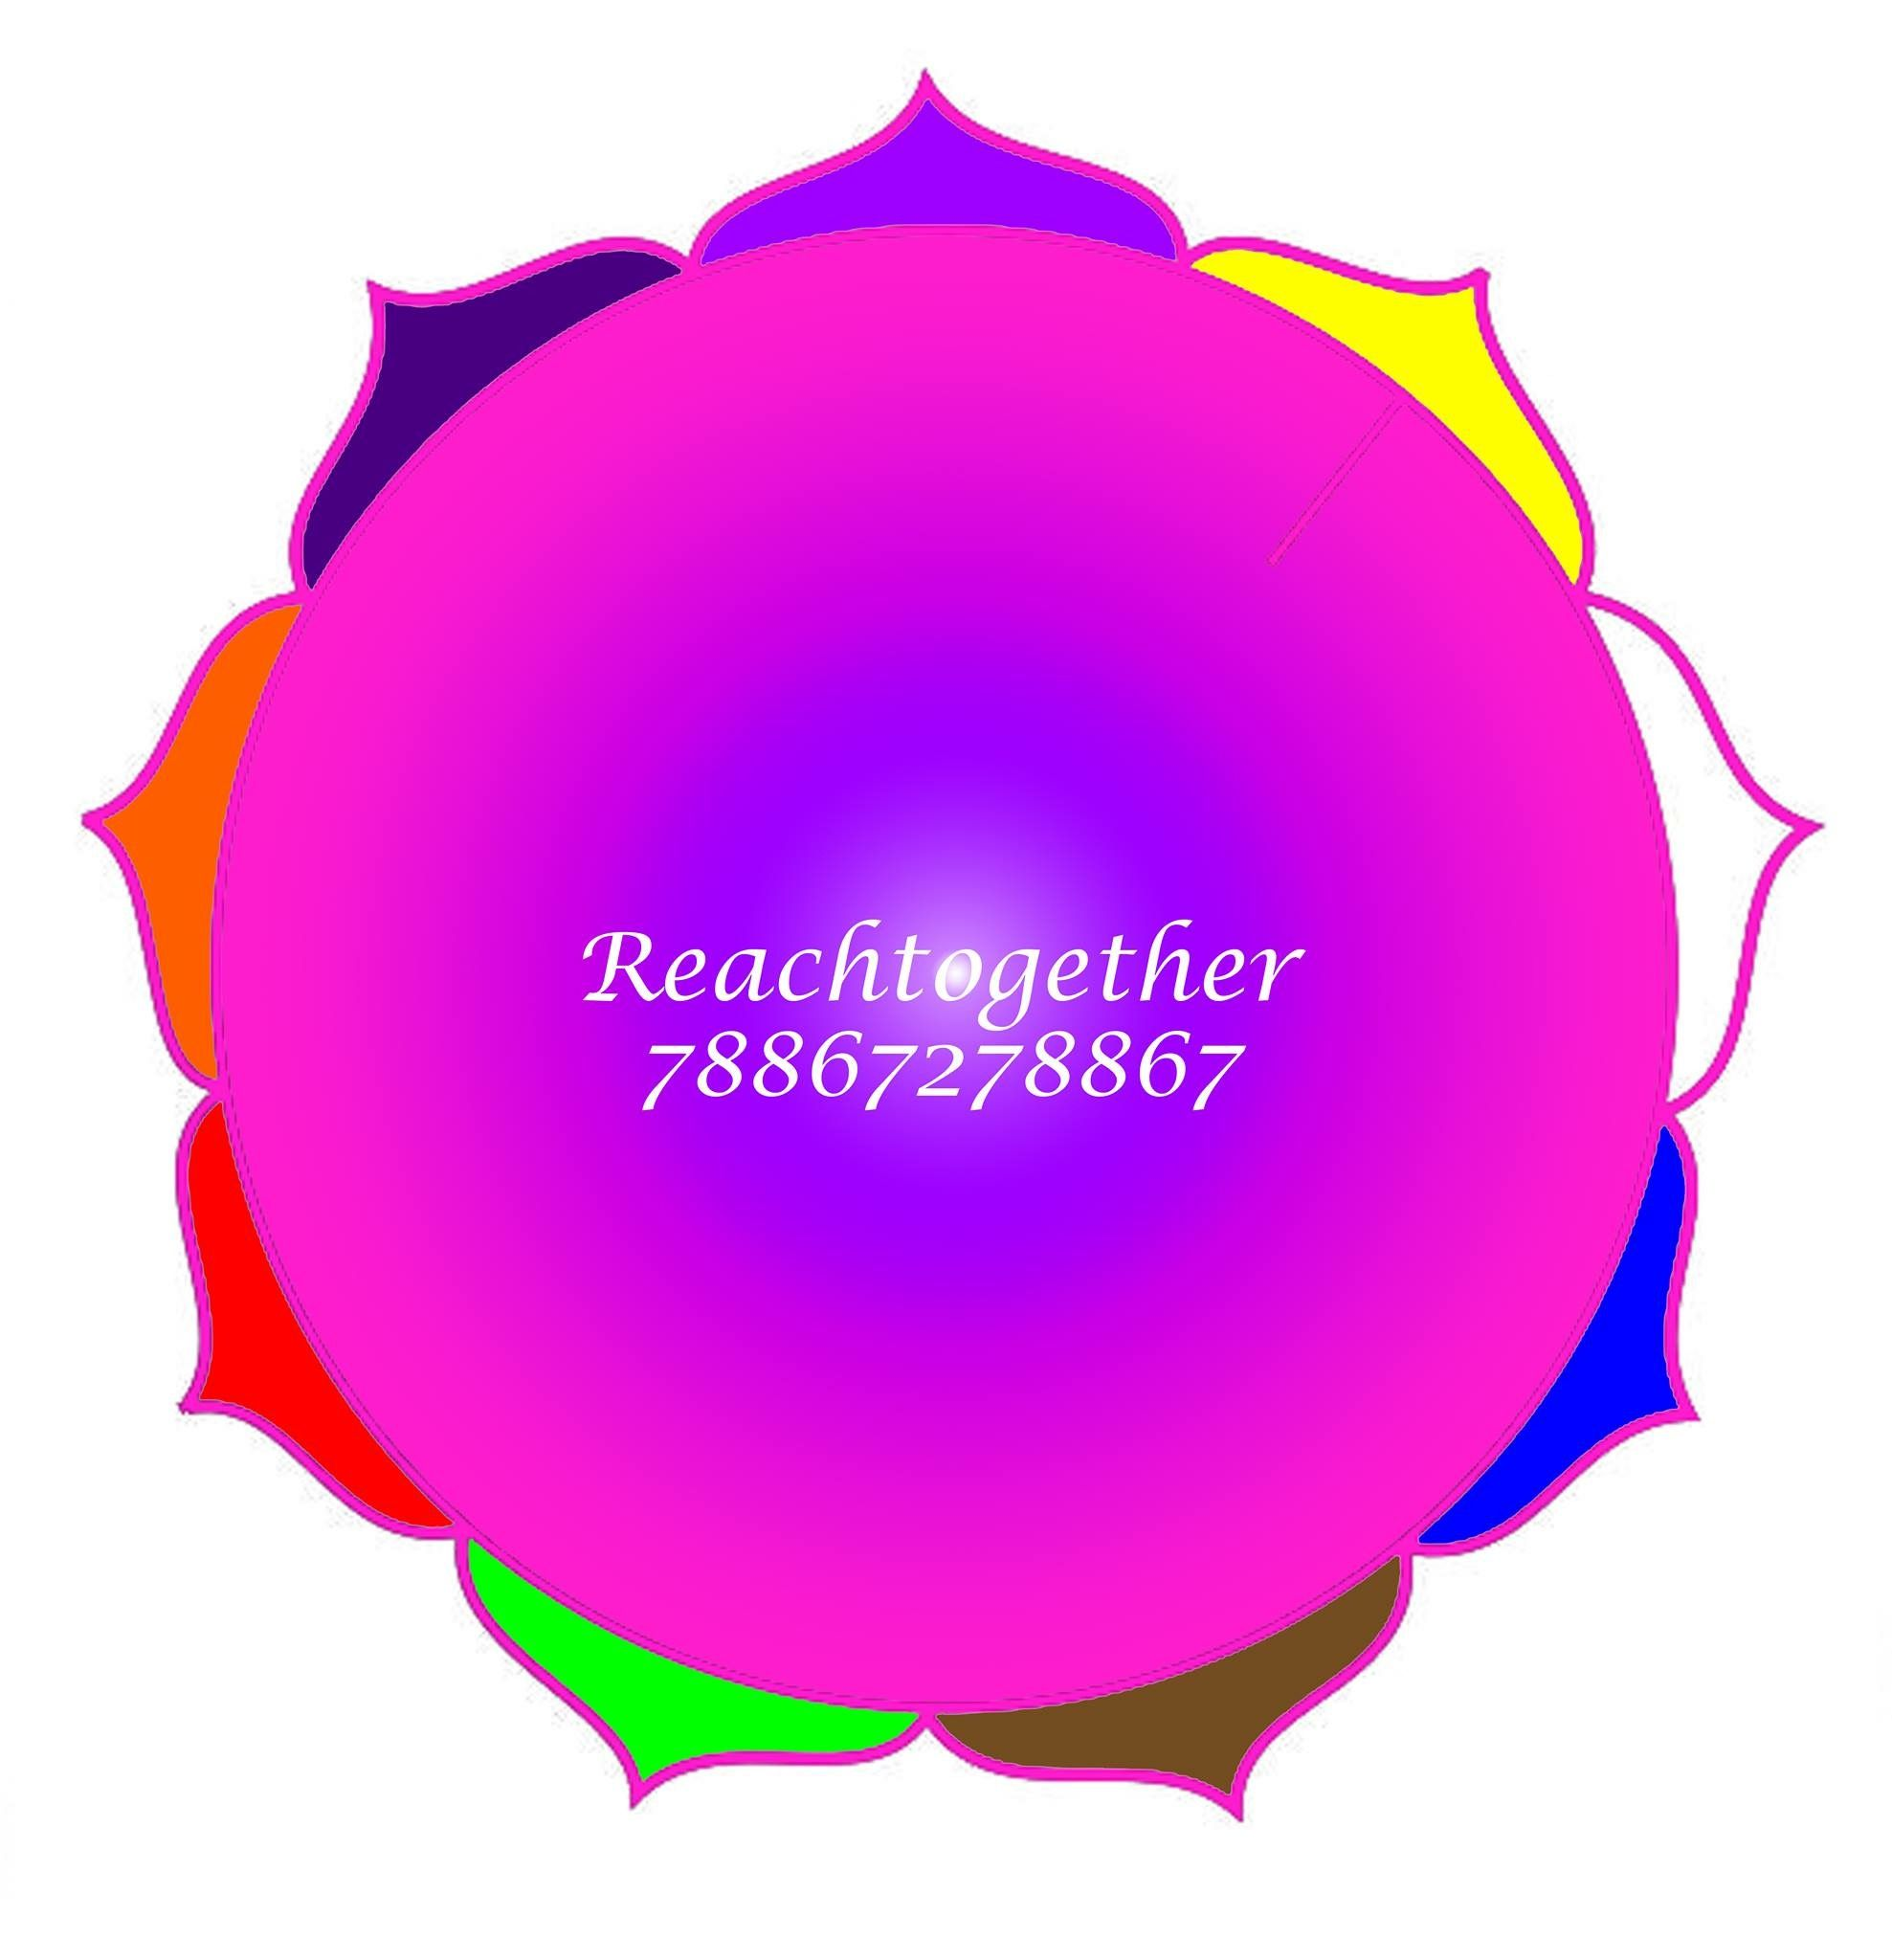 For all auspicious results in a Sai Sanjeevini healing energy circle. Reach solutions with harmony, joy and ease.   From Facebook post in Switchwords